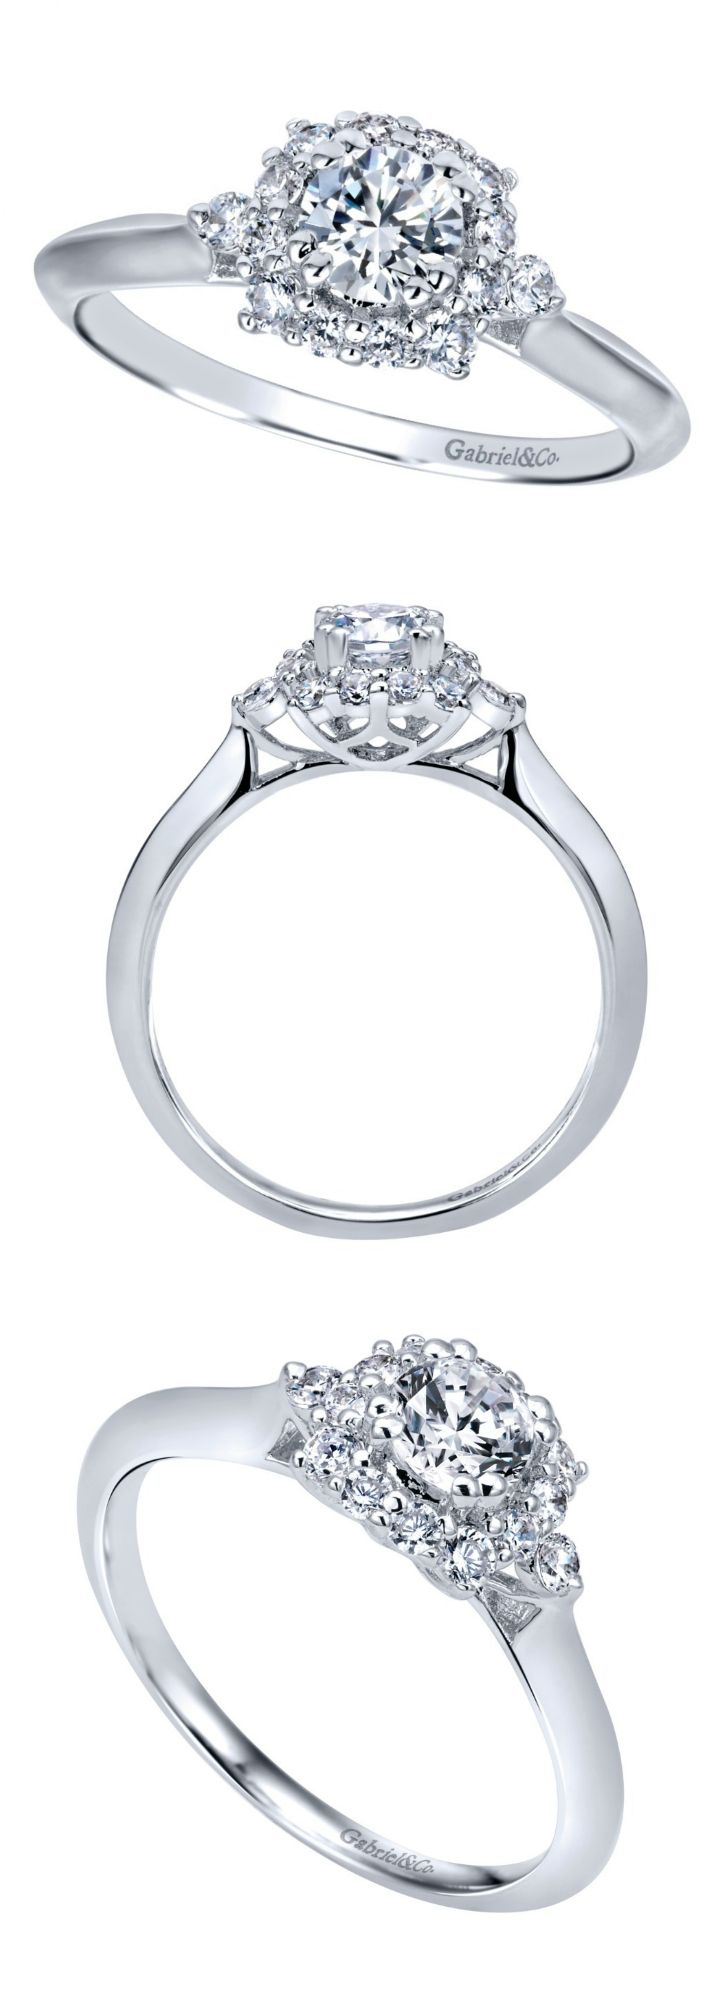 This pre-set diamond engagement ring is one of our signature pieces. It's ready for your hand immediately.